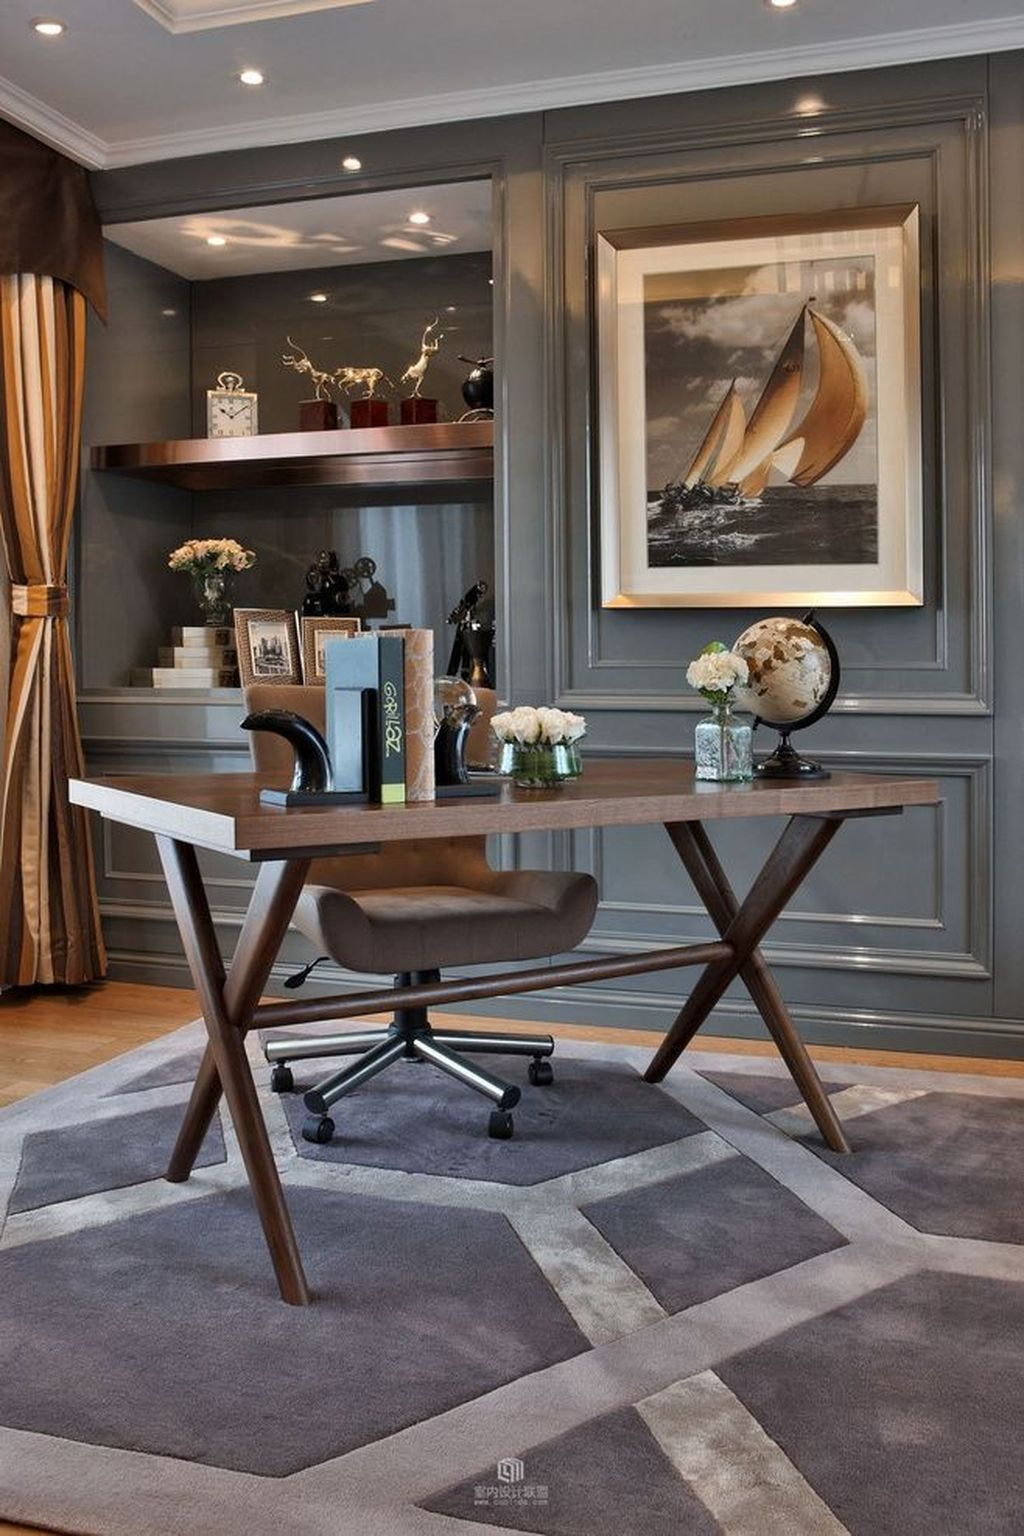 Best Contemporary Home Office Design Ideas Remodel Pictures: When You Choose To Design This Kind Of Office, Attempt